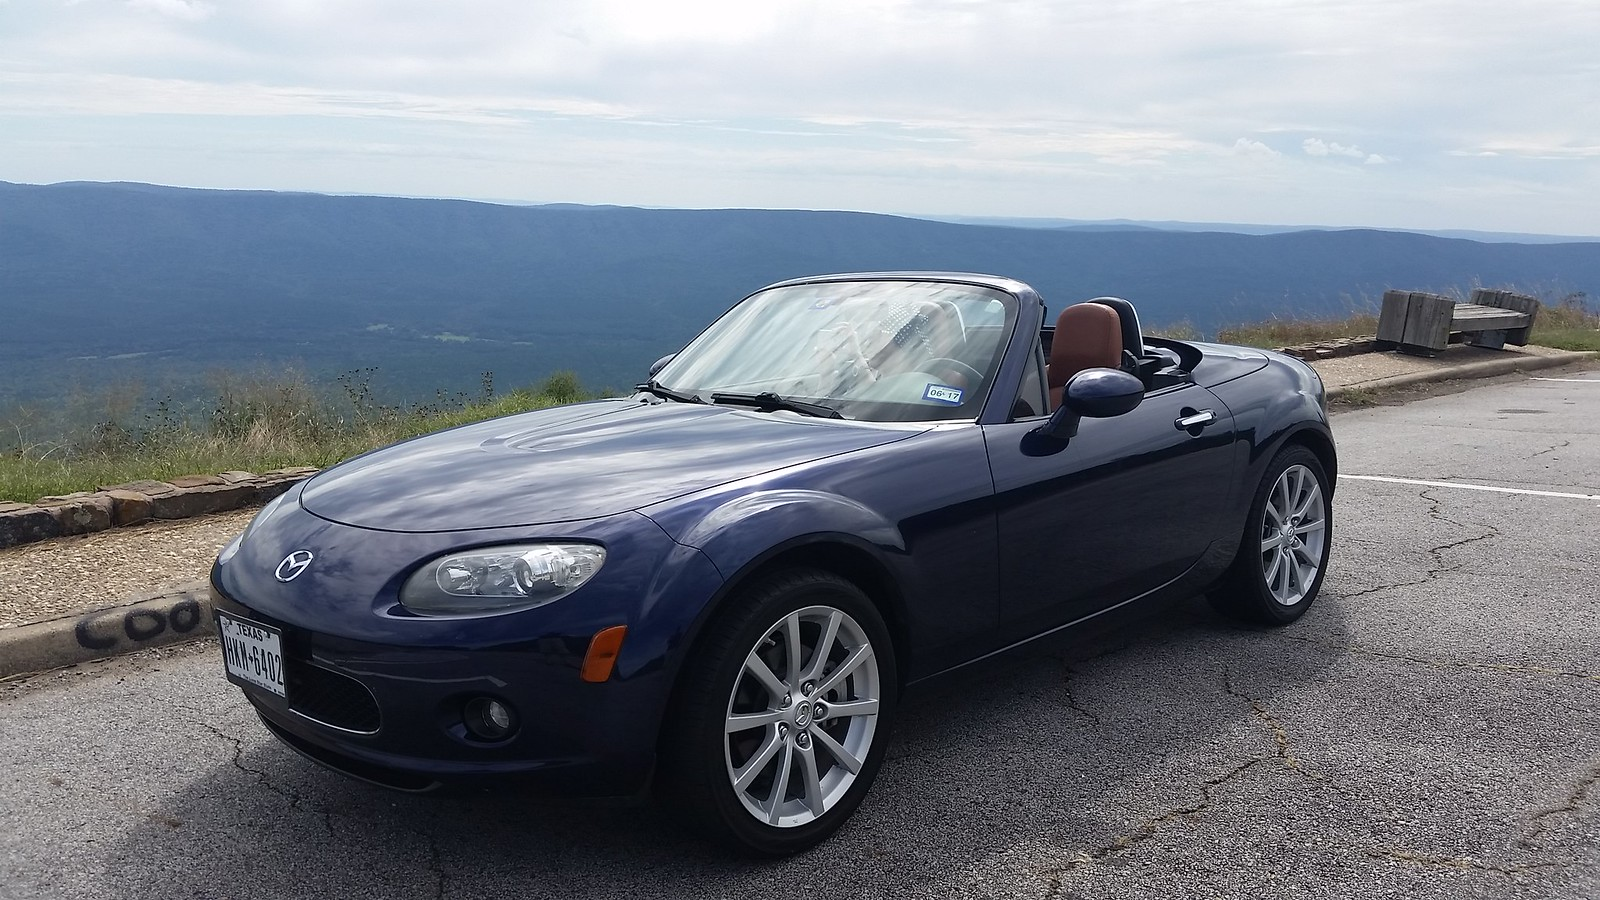 Fuse Mazda Diagram Box Mx 5mi Wiring On Mx5 What Did You Do To Your Nc Today Archive Page 75 5 Miata Forum Rh Net 6 1998 626